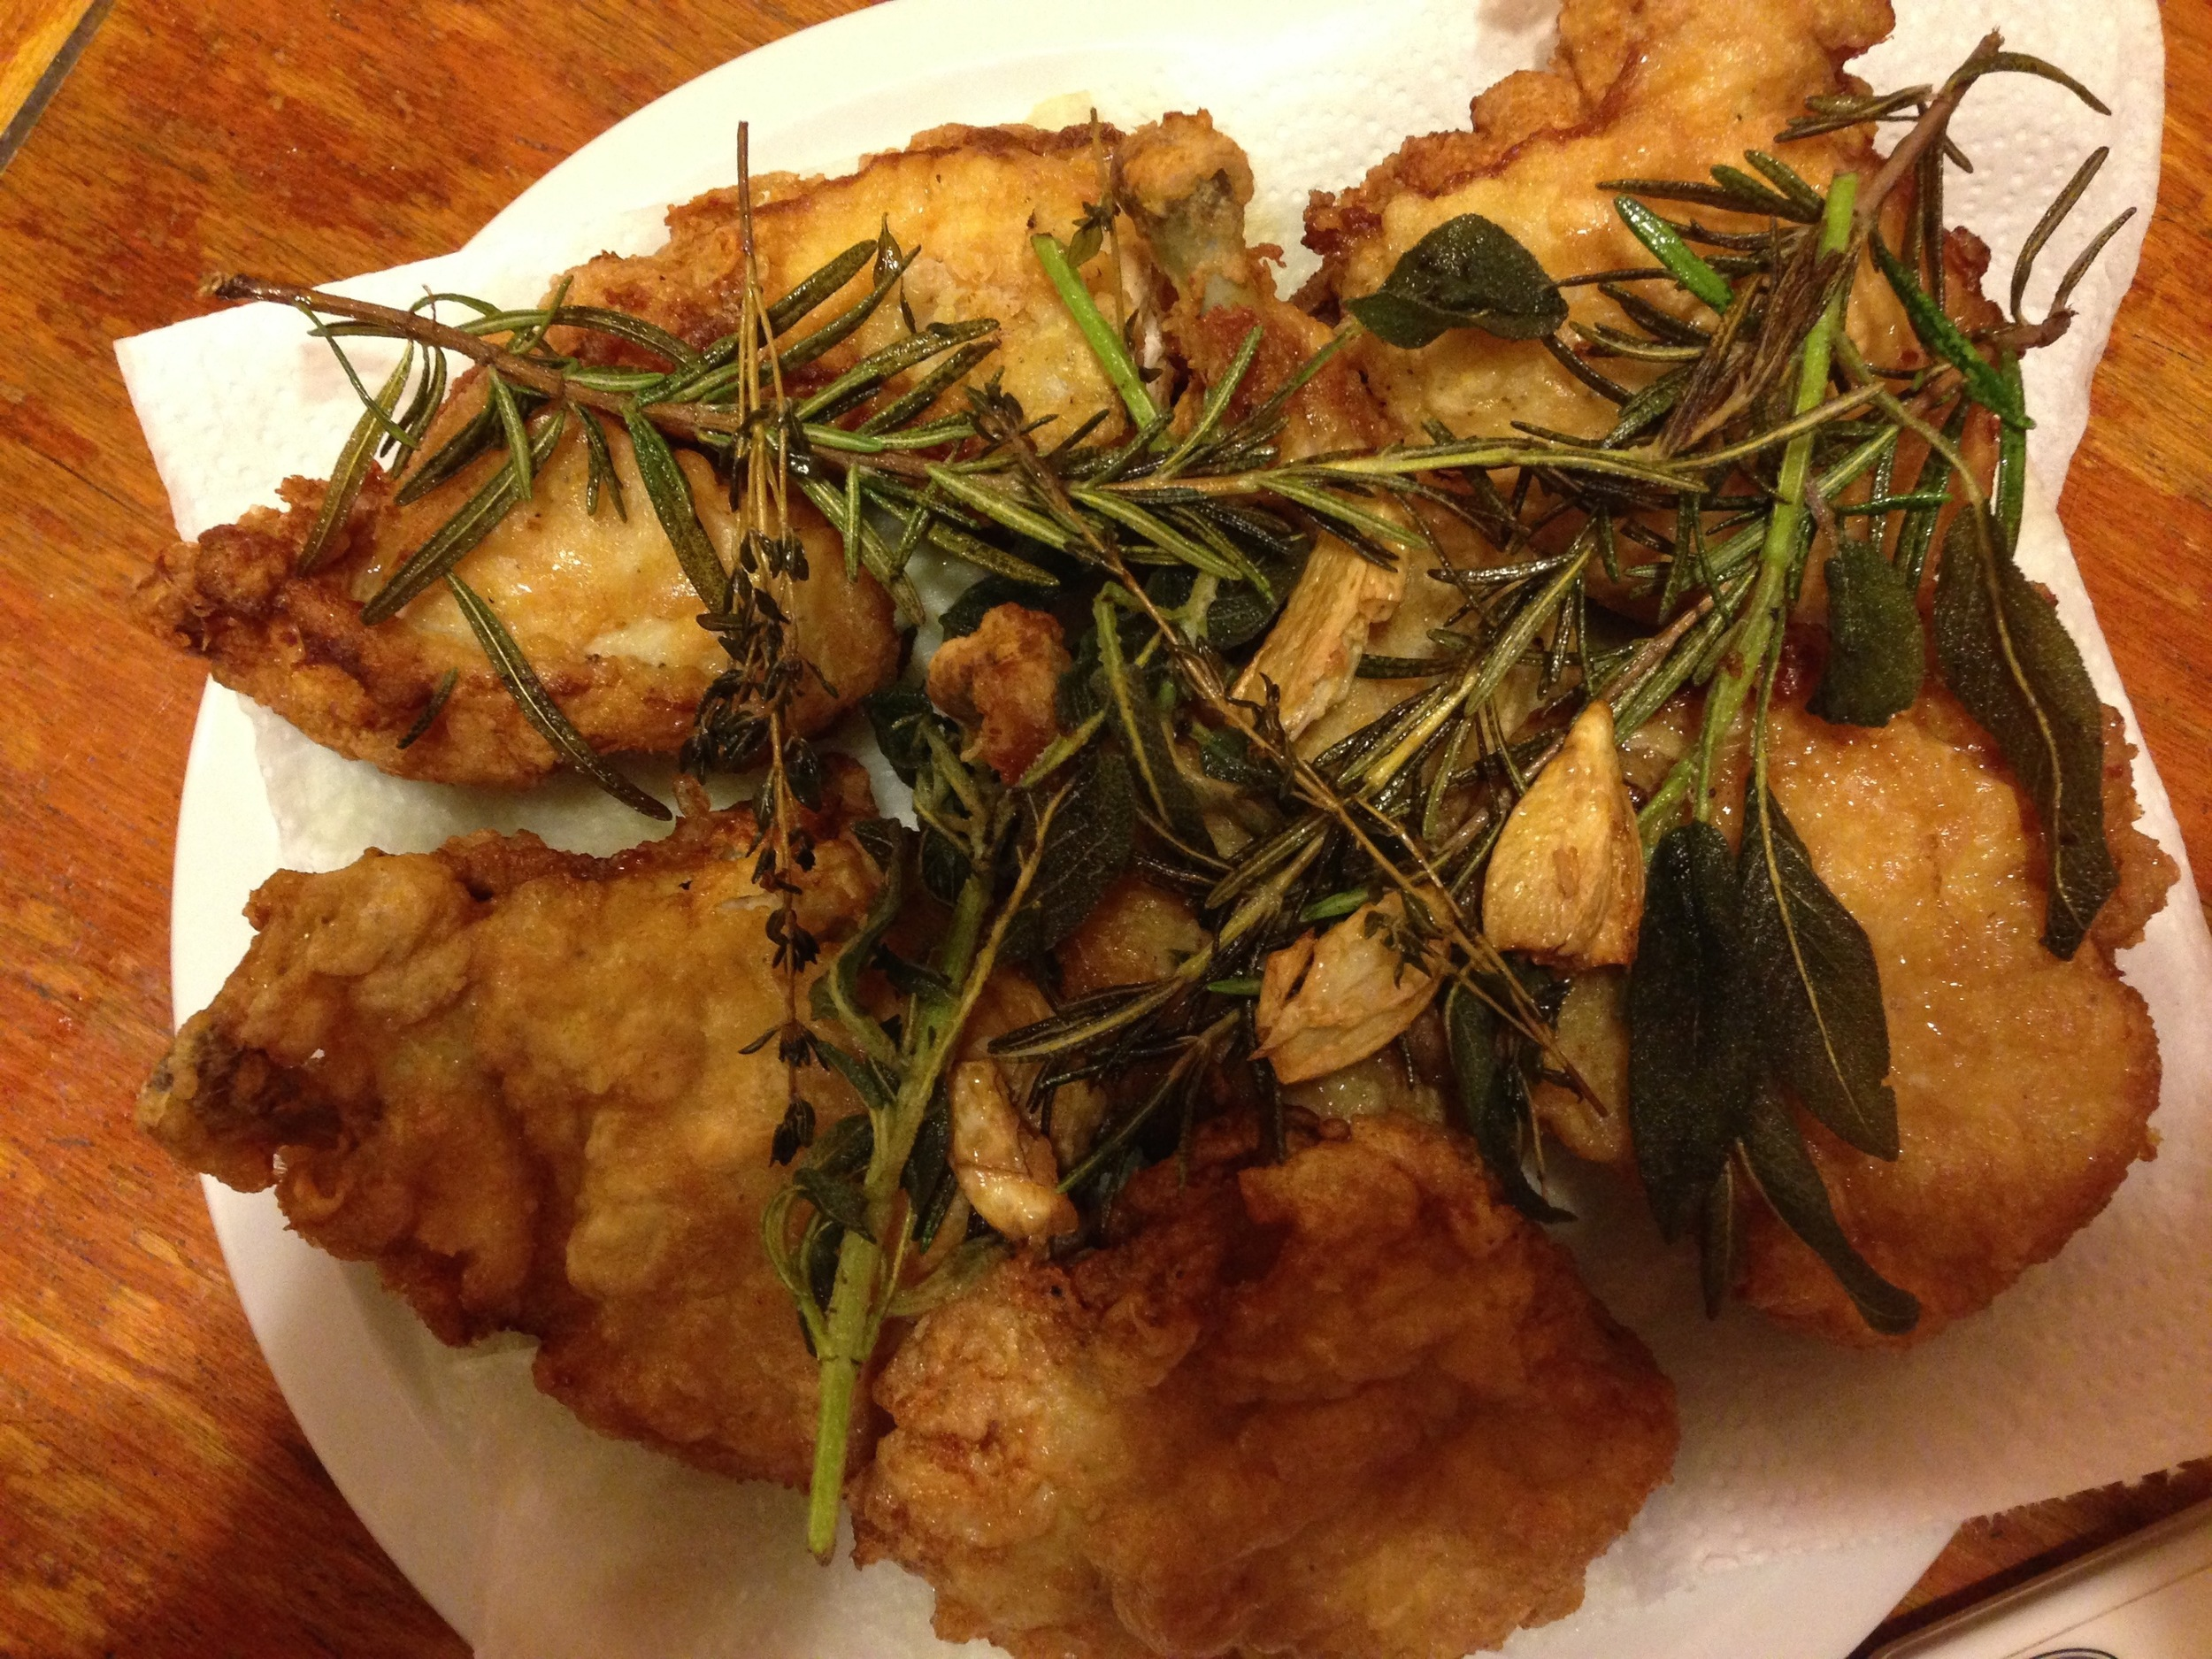 Yuzu Fried Chicken with Fried Herbs and Garlic